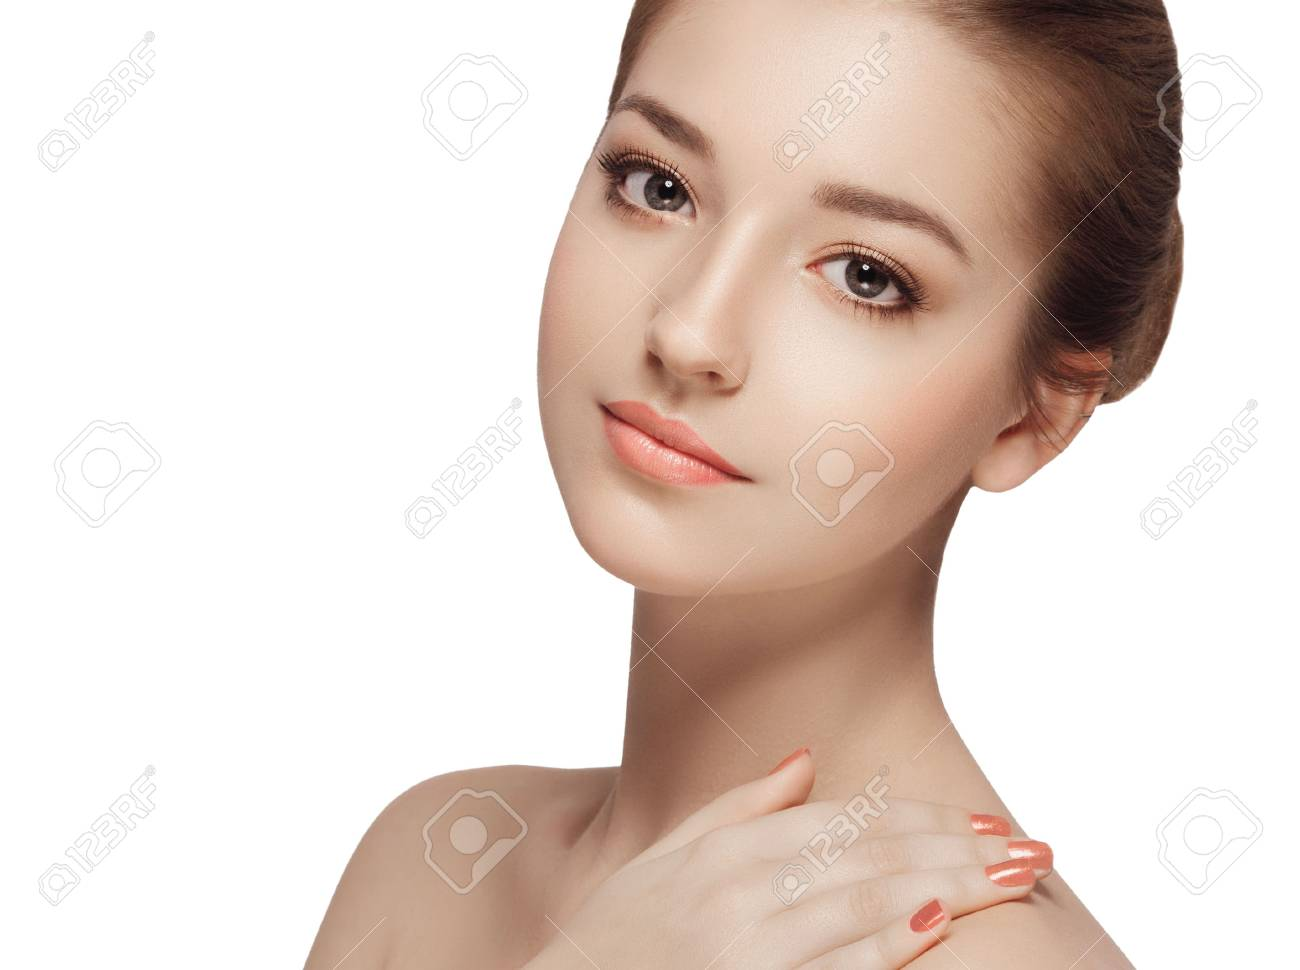 Beauty Woman face Portrait. Isolated white background - 63640049